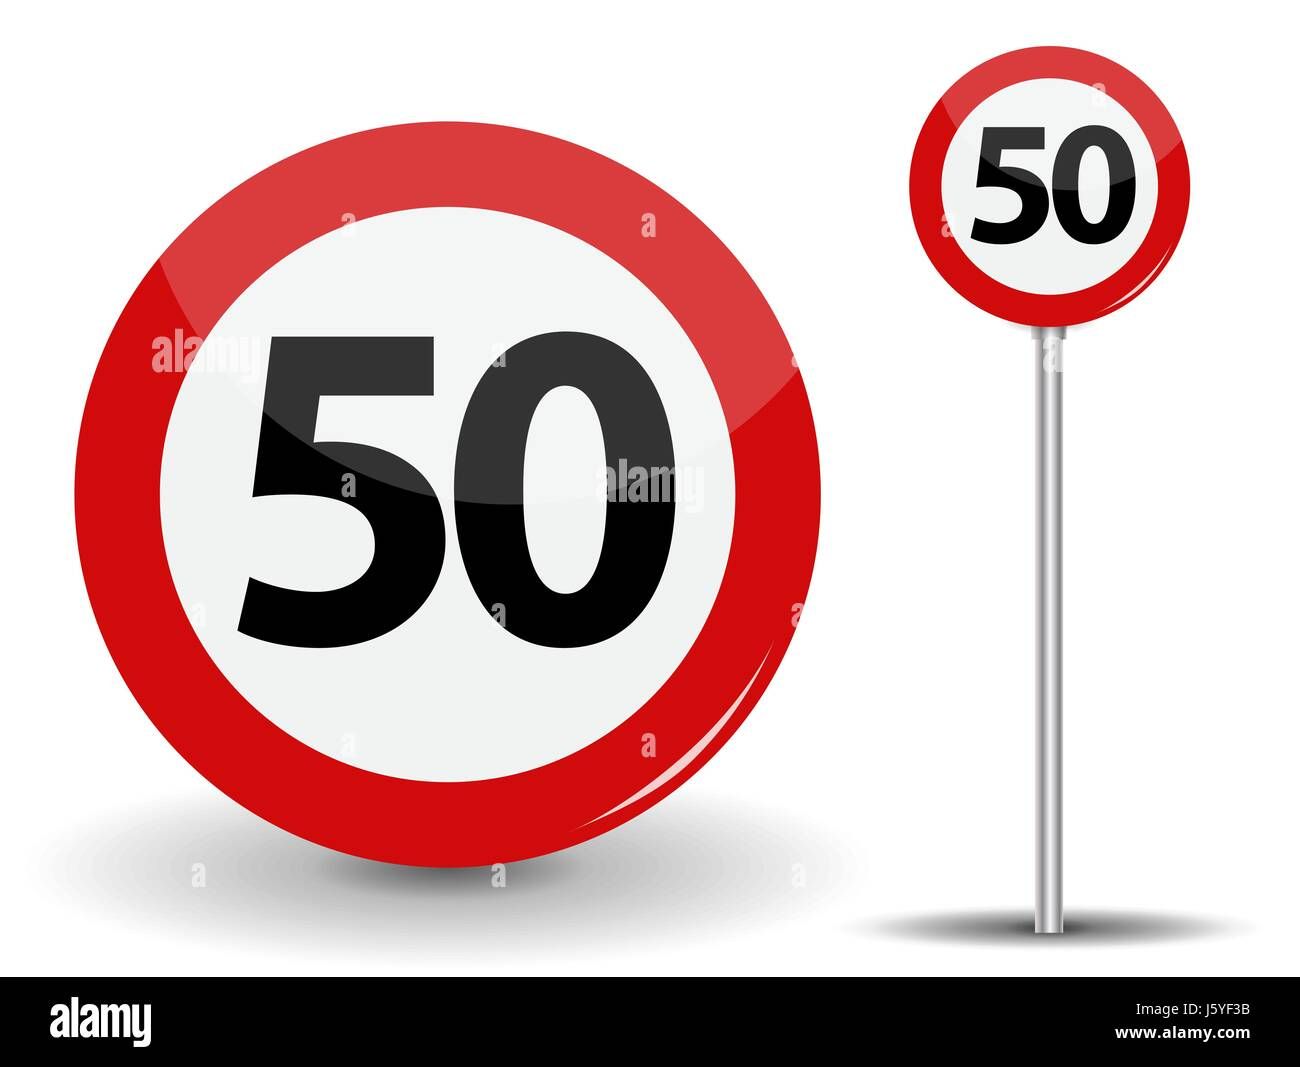 Round Red Road Sign Speed limit 50 kilometers per hour. Vector Illustration. Stock Vector